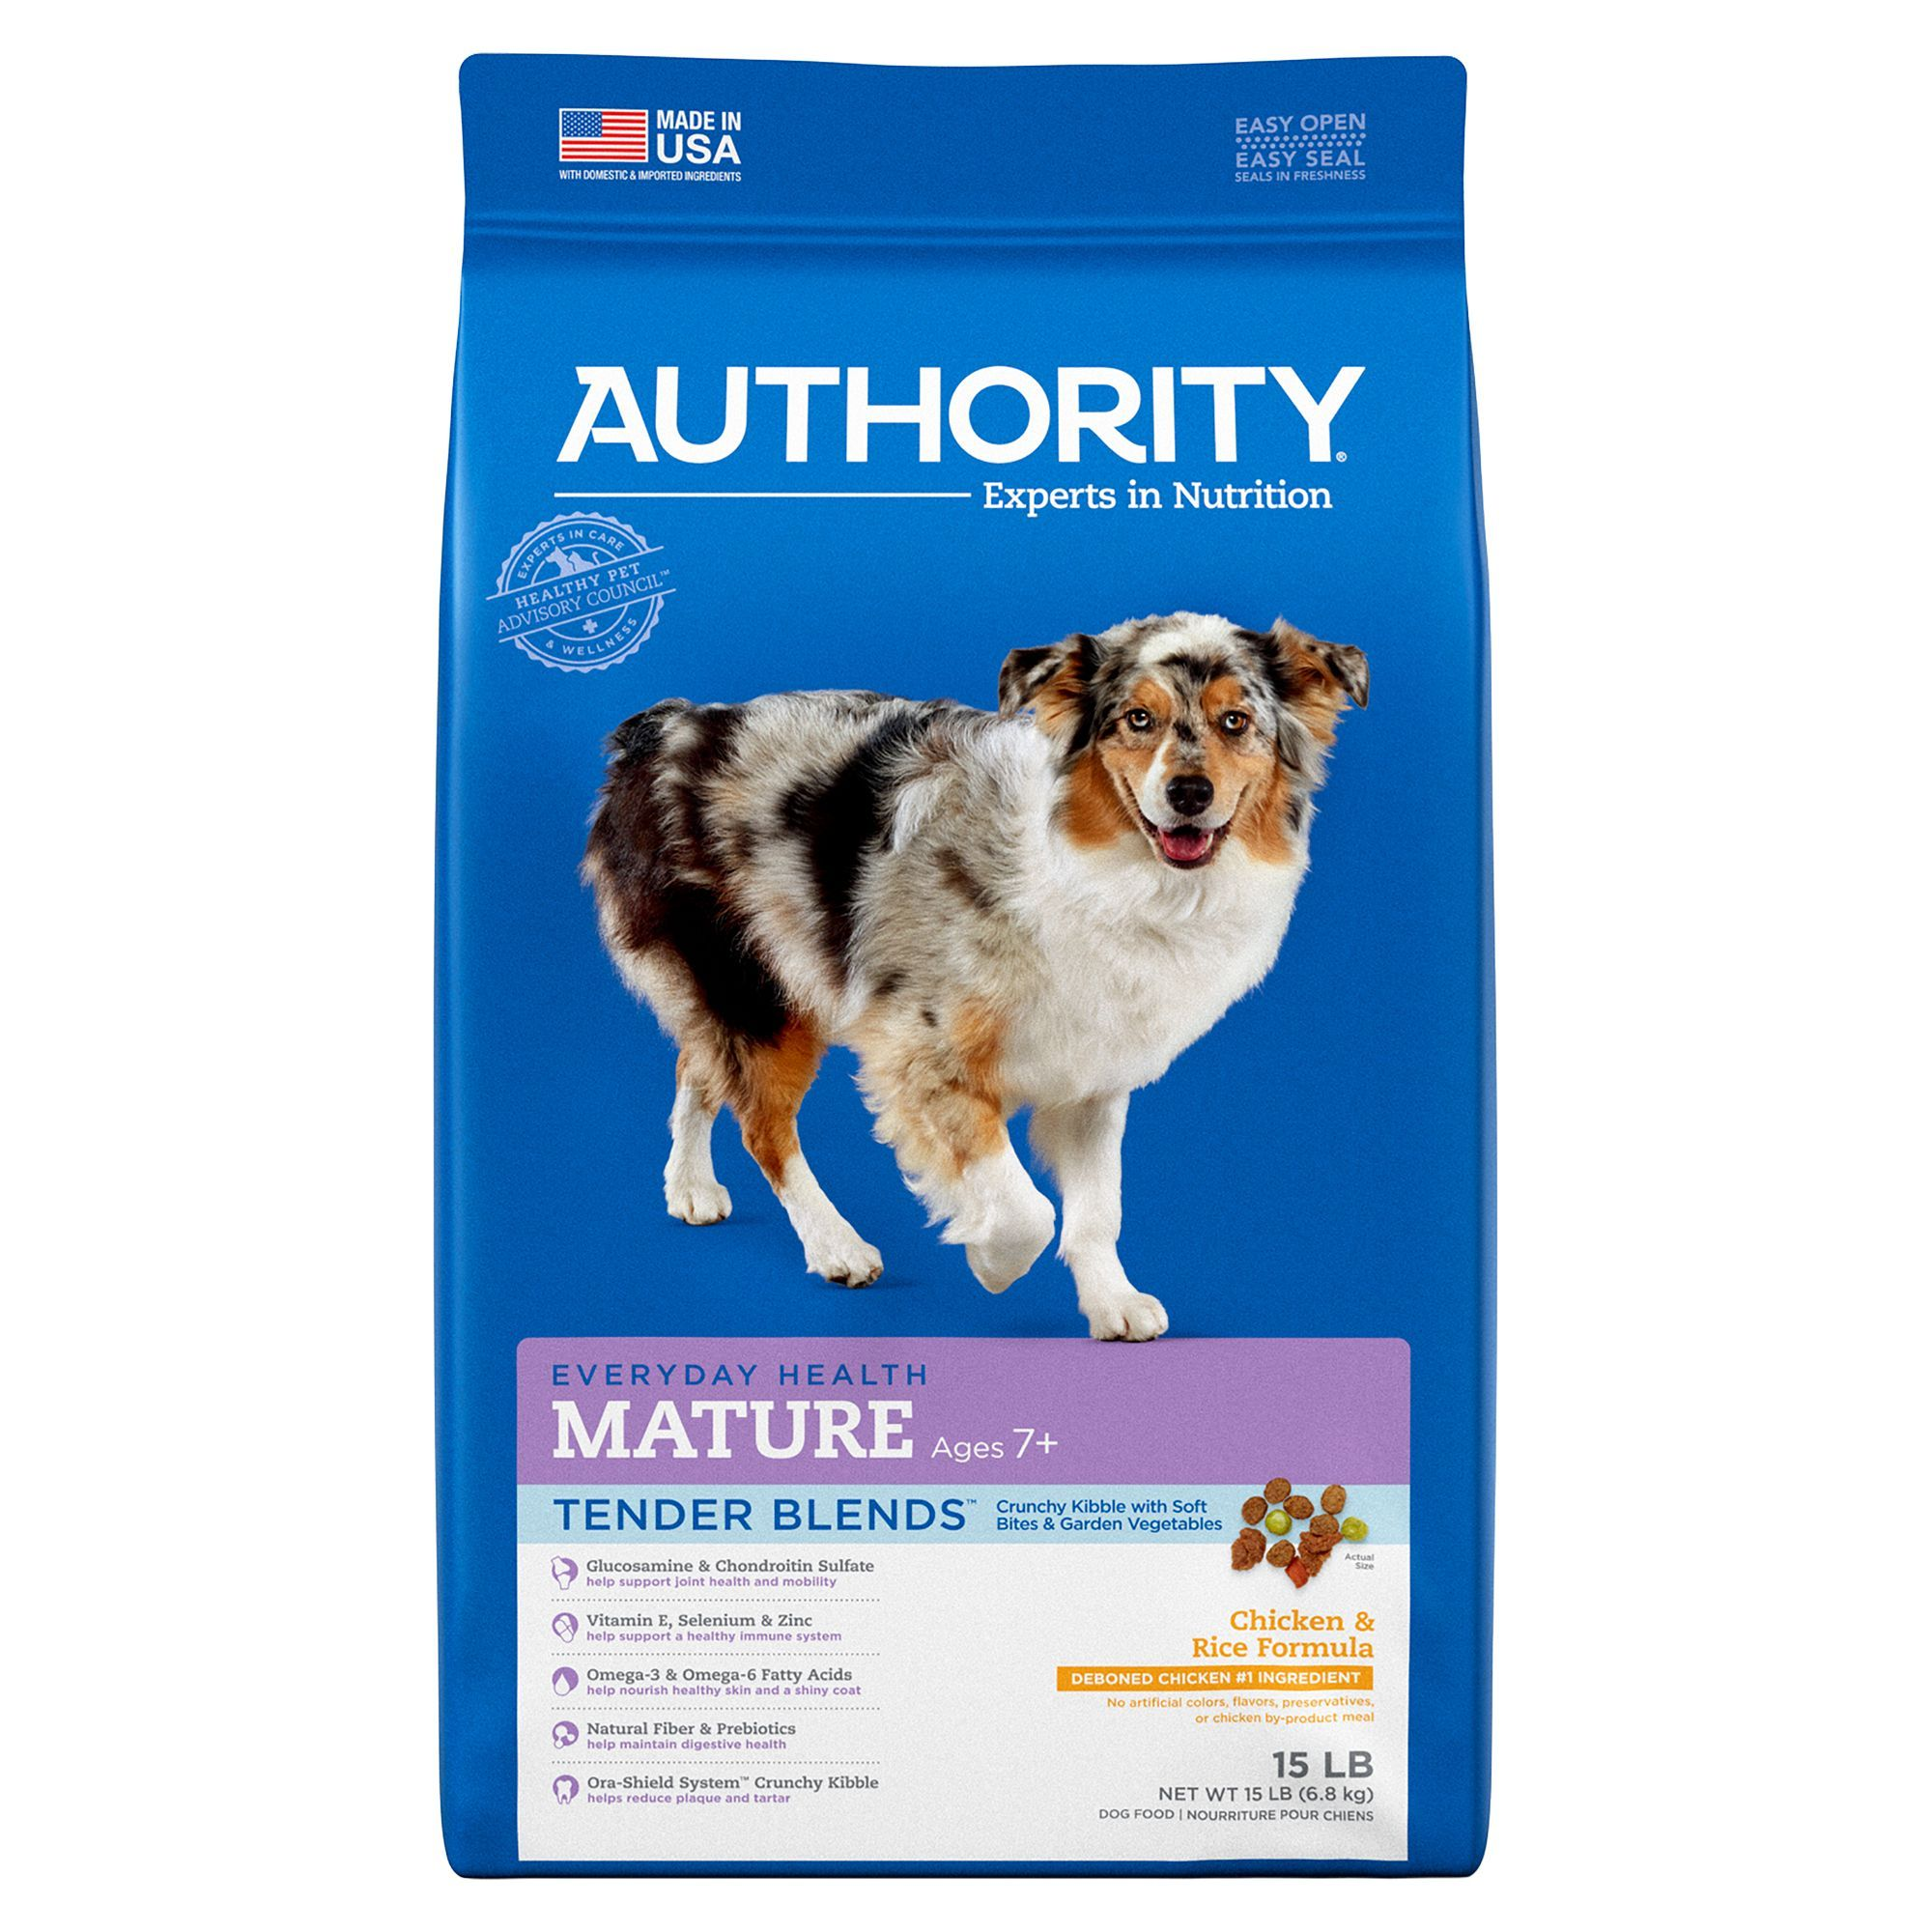 Authority Tender Blends Mature Adult Dog Food - Chicken & Rice